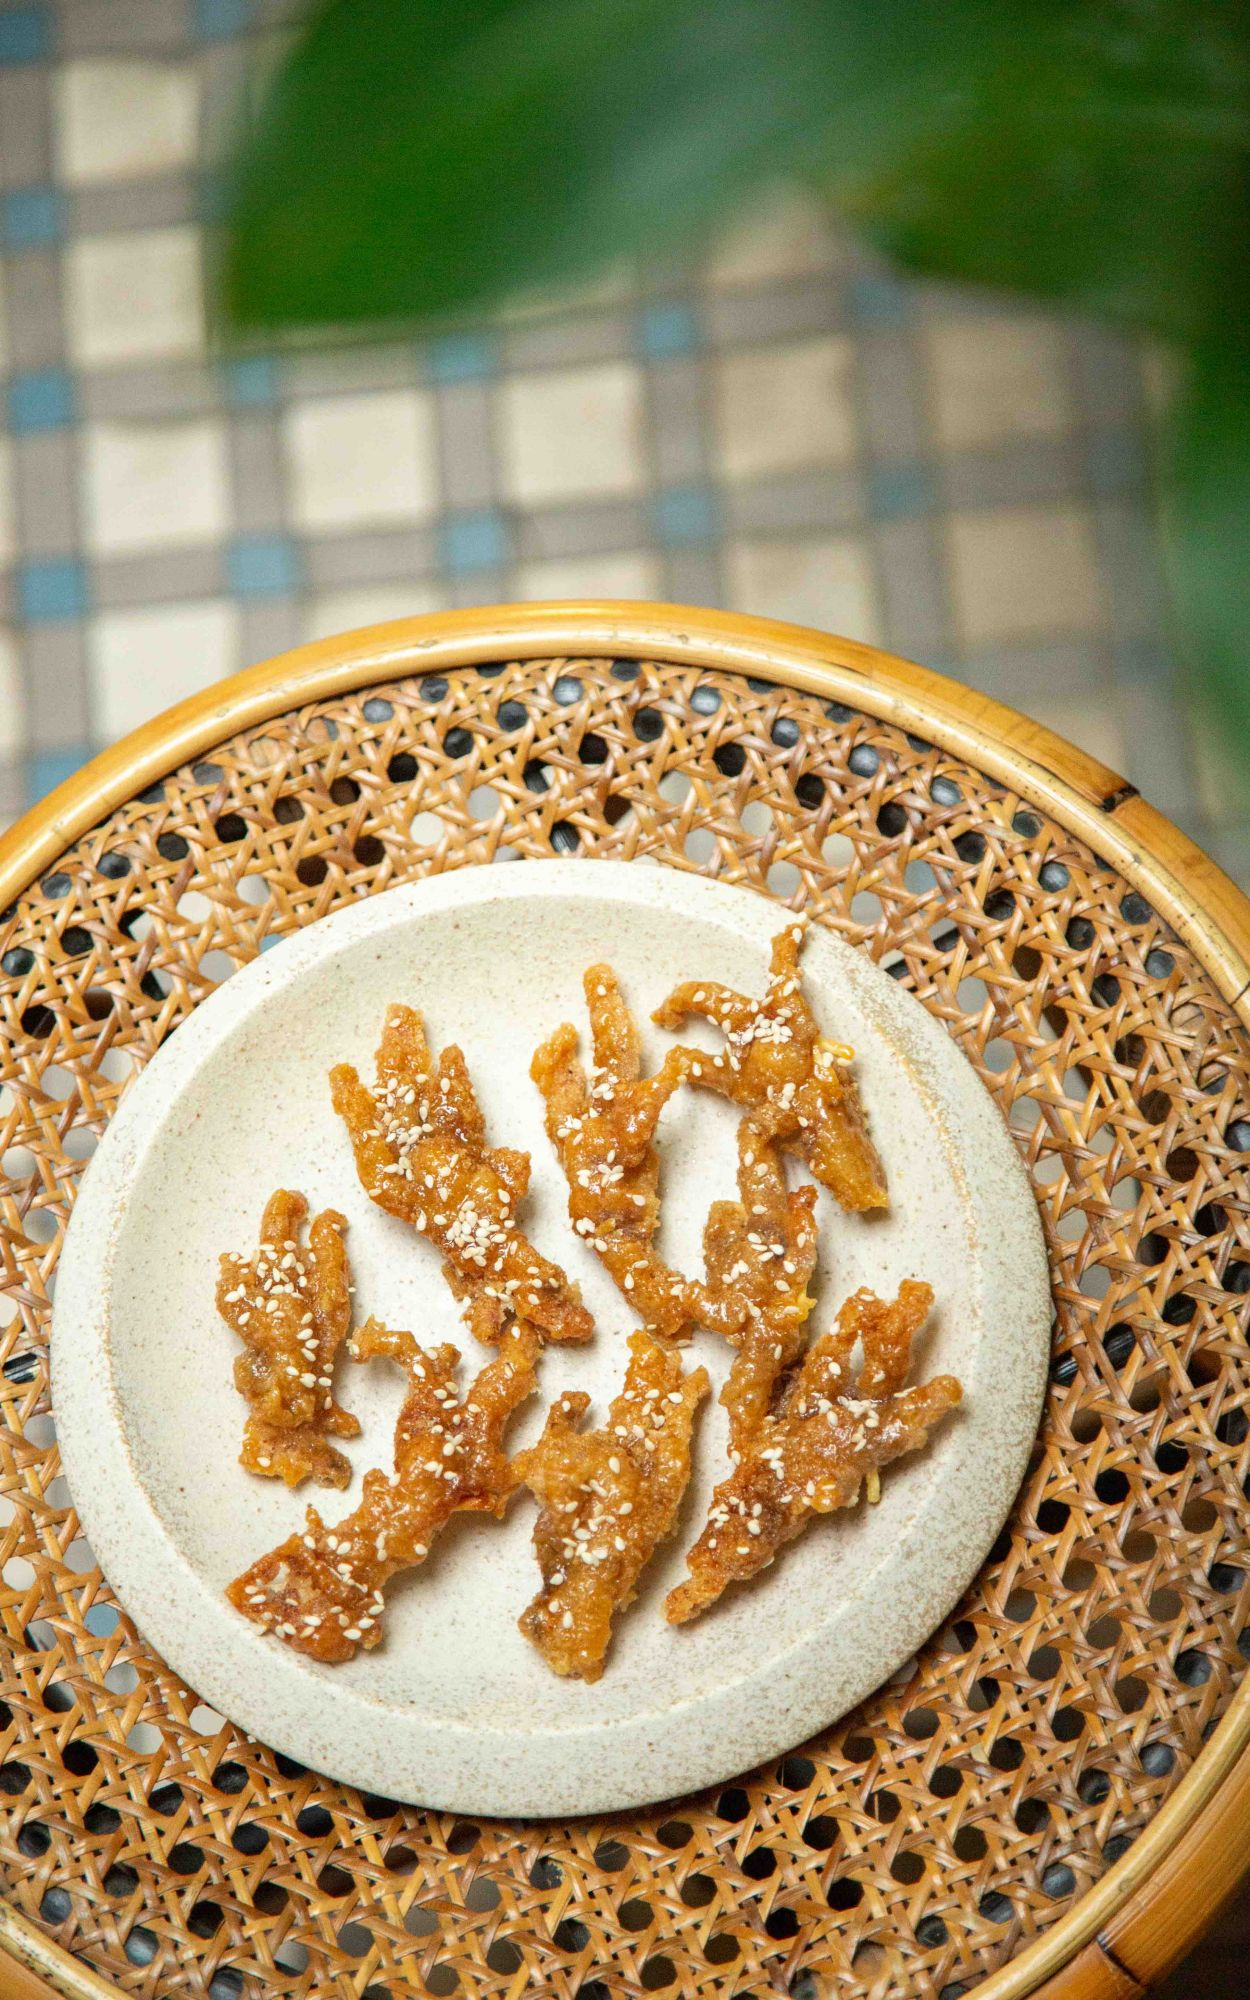 Chicken feet with soy caramel & sesame seeds